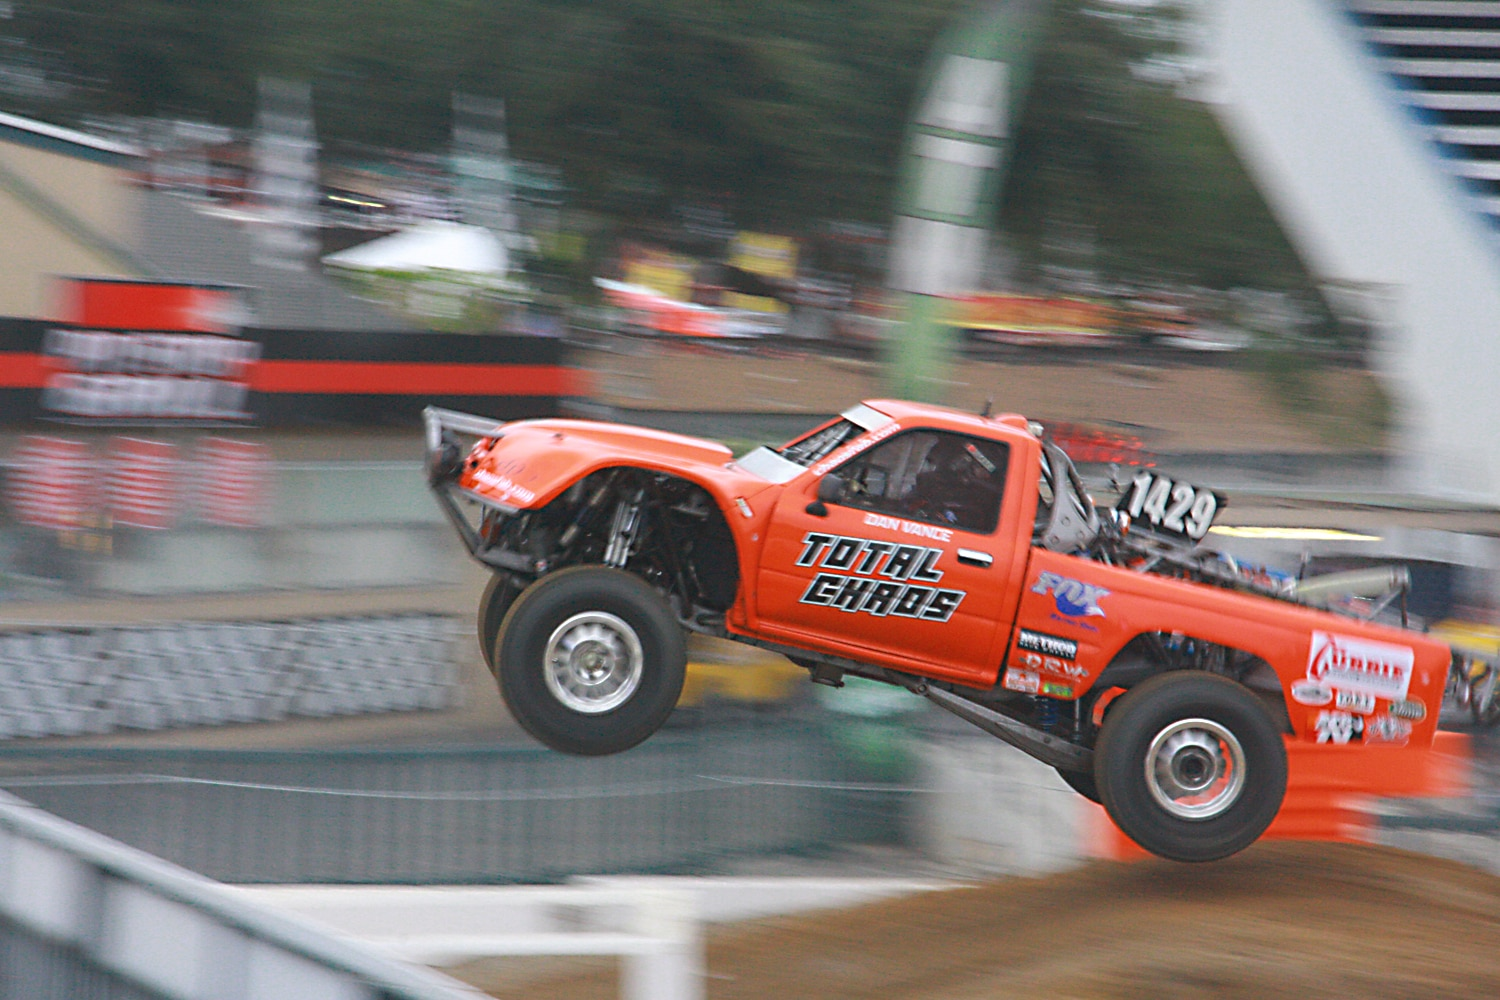 Off Road Race Truck   23 Dan Vance Total Chaos Toyota pickup stadium jump